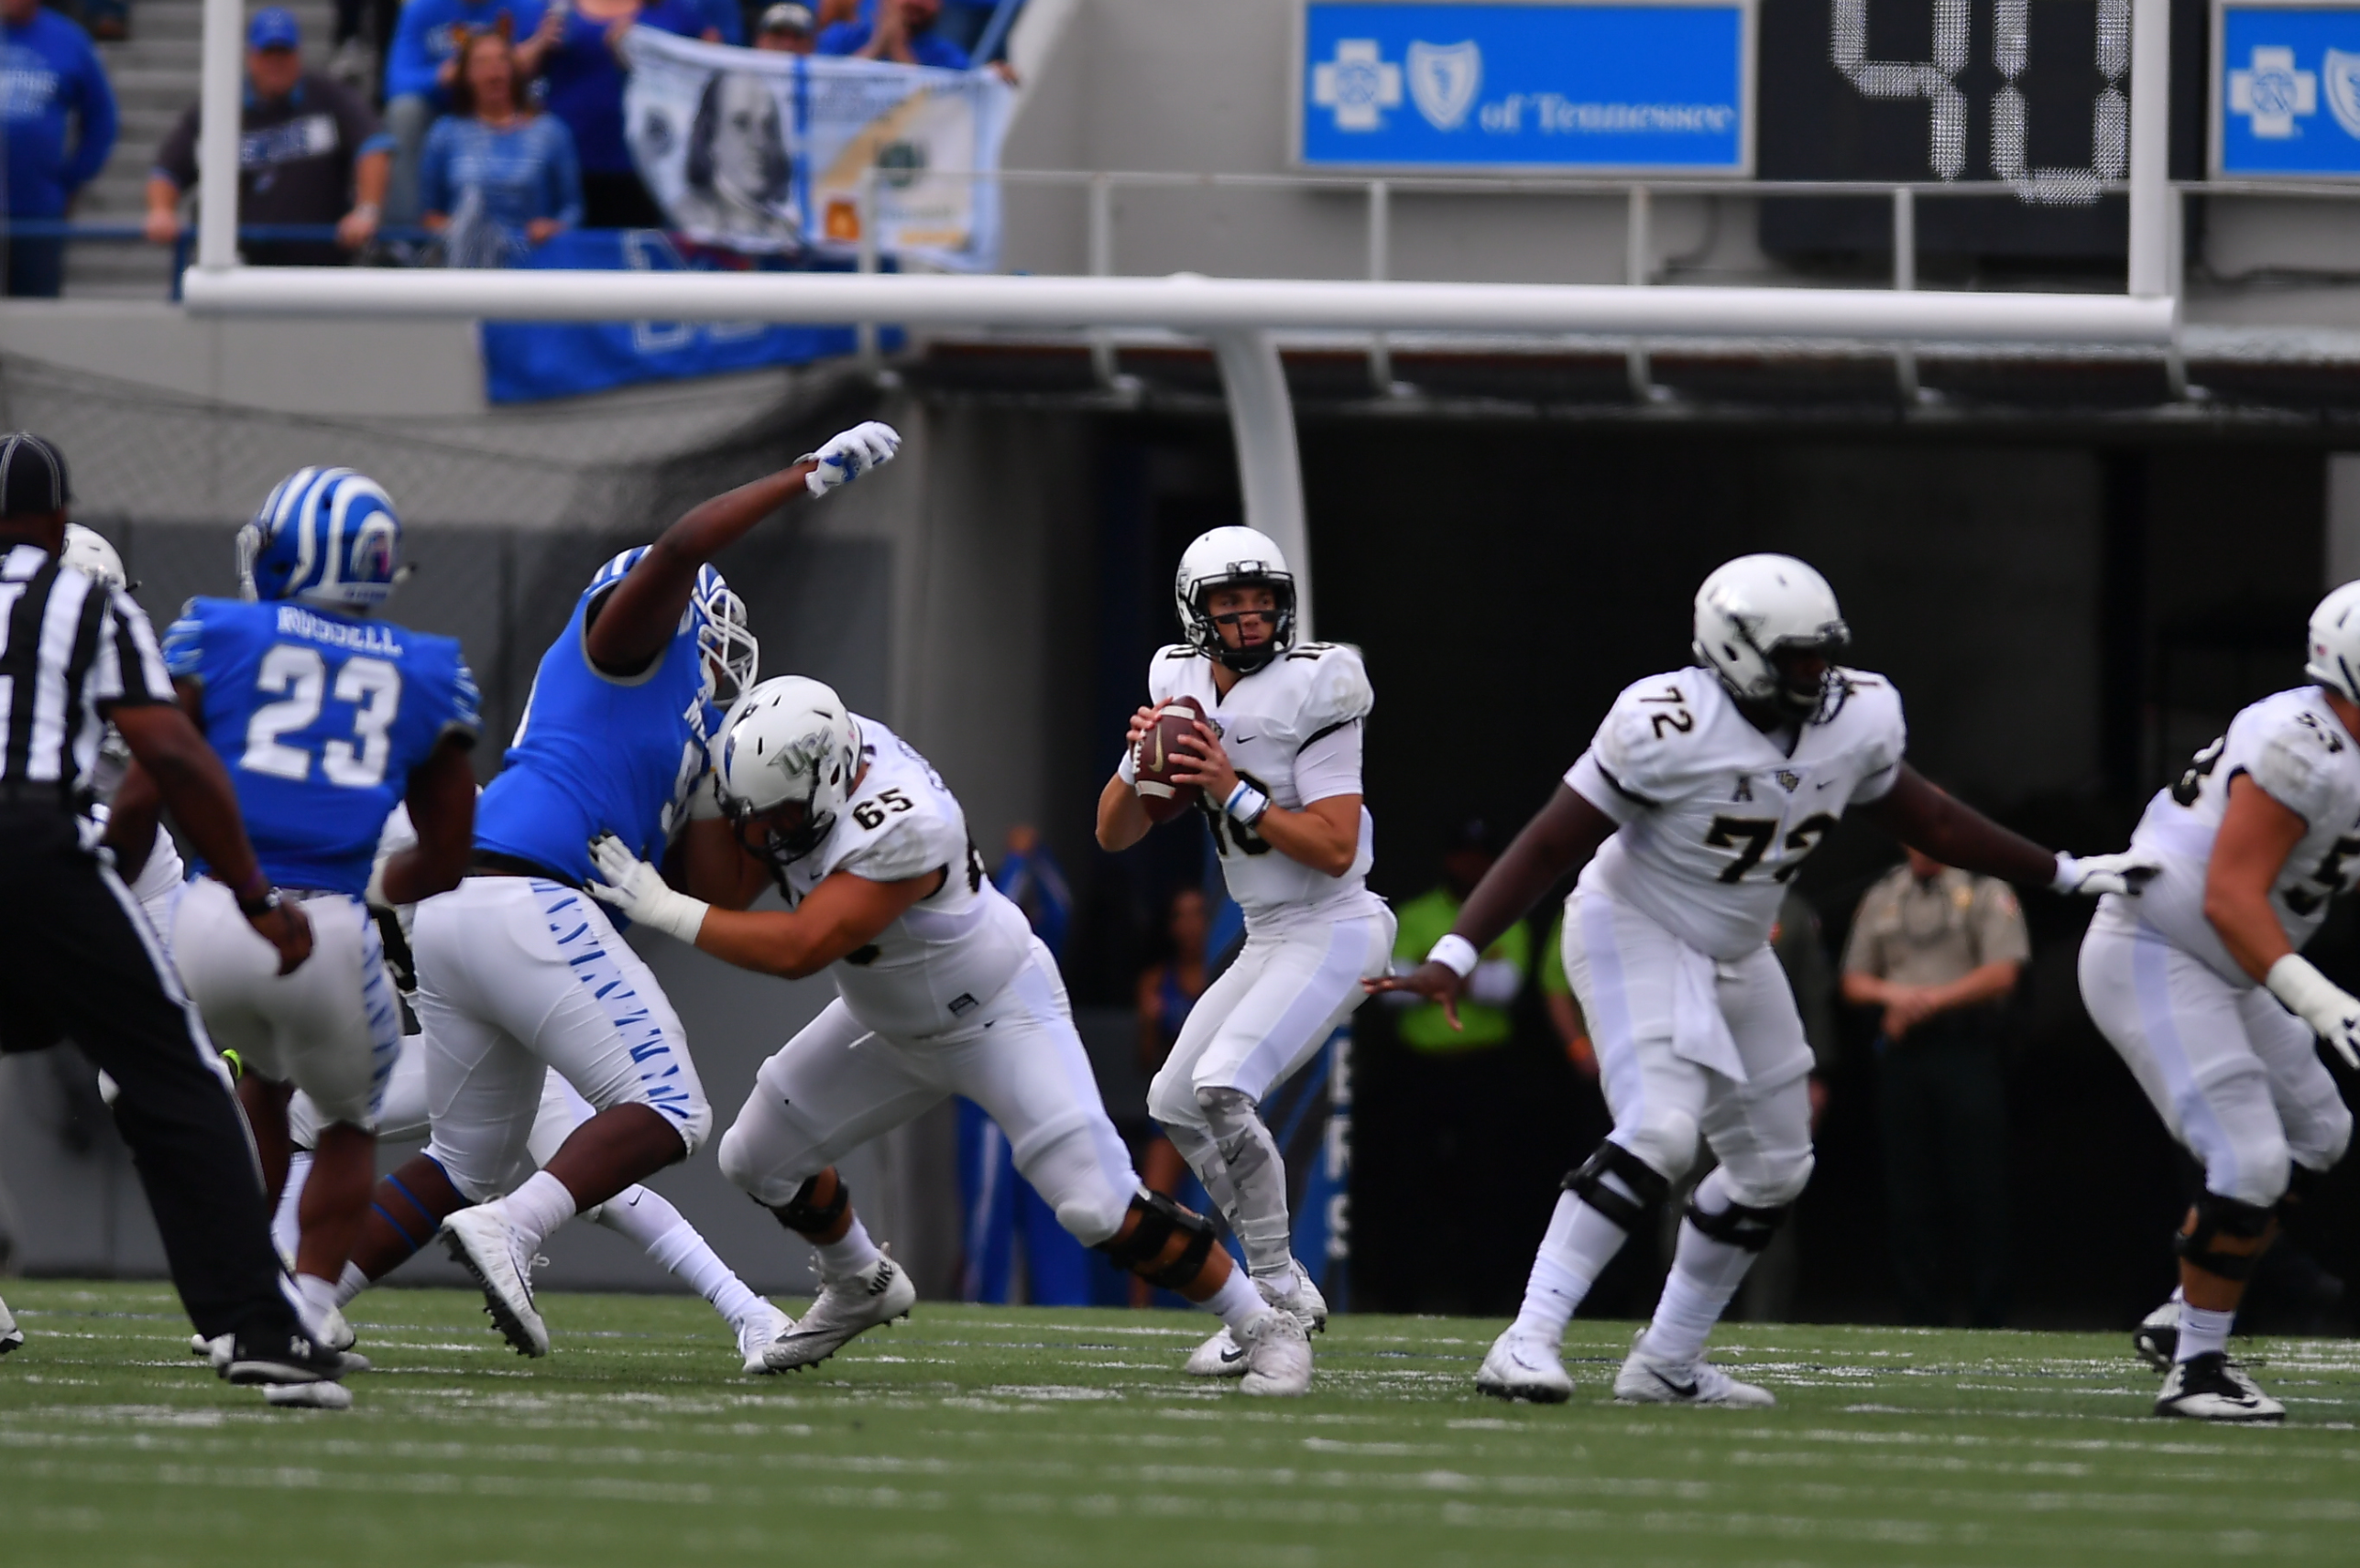 Undefeated No 10 Ucf Overcomes Adversity With Fourth Quarter Comeback In Memphis Knightnews Com